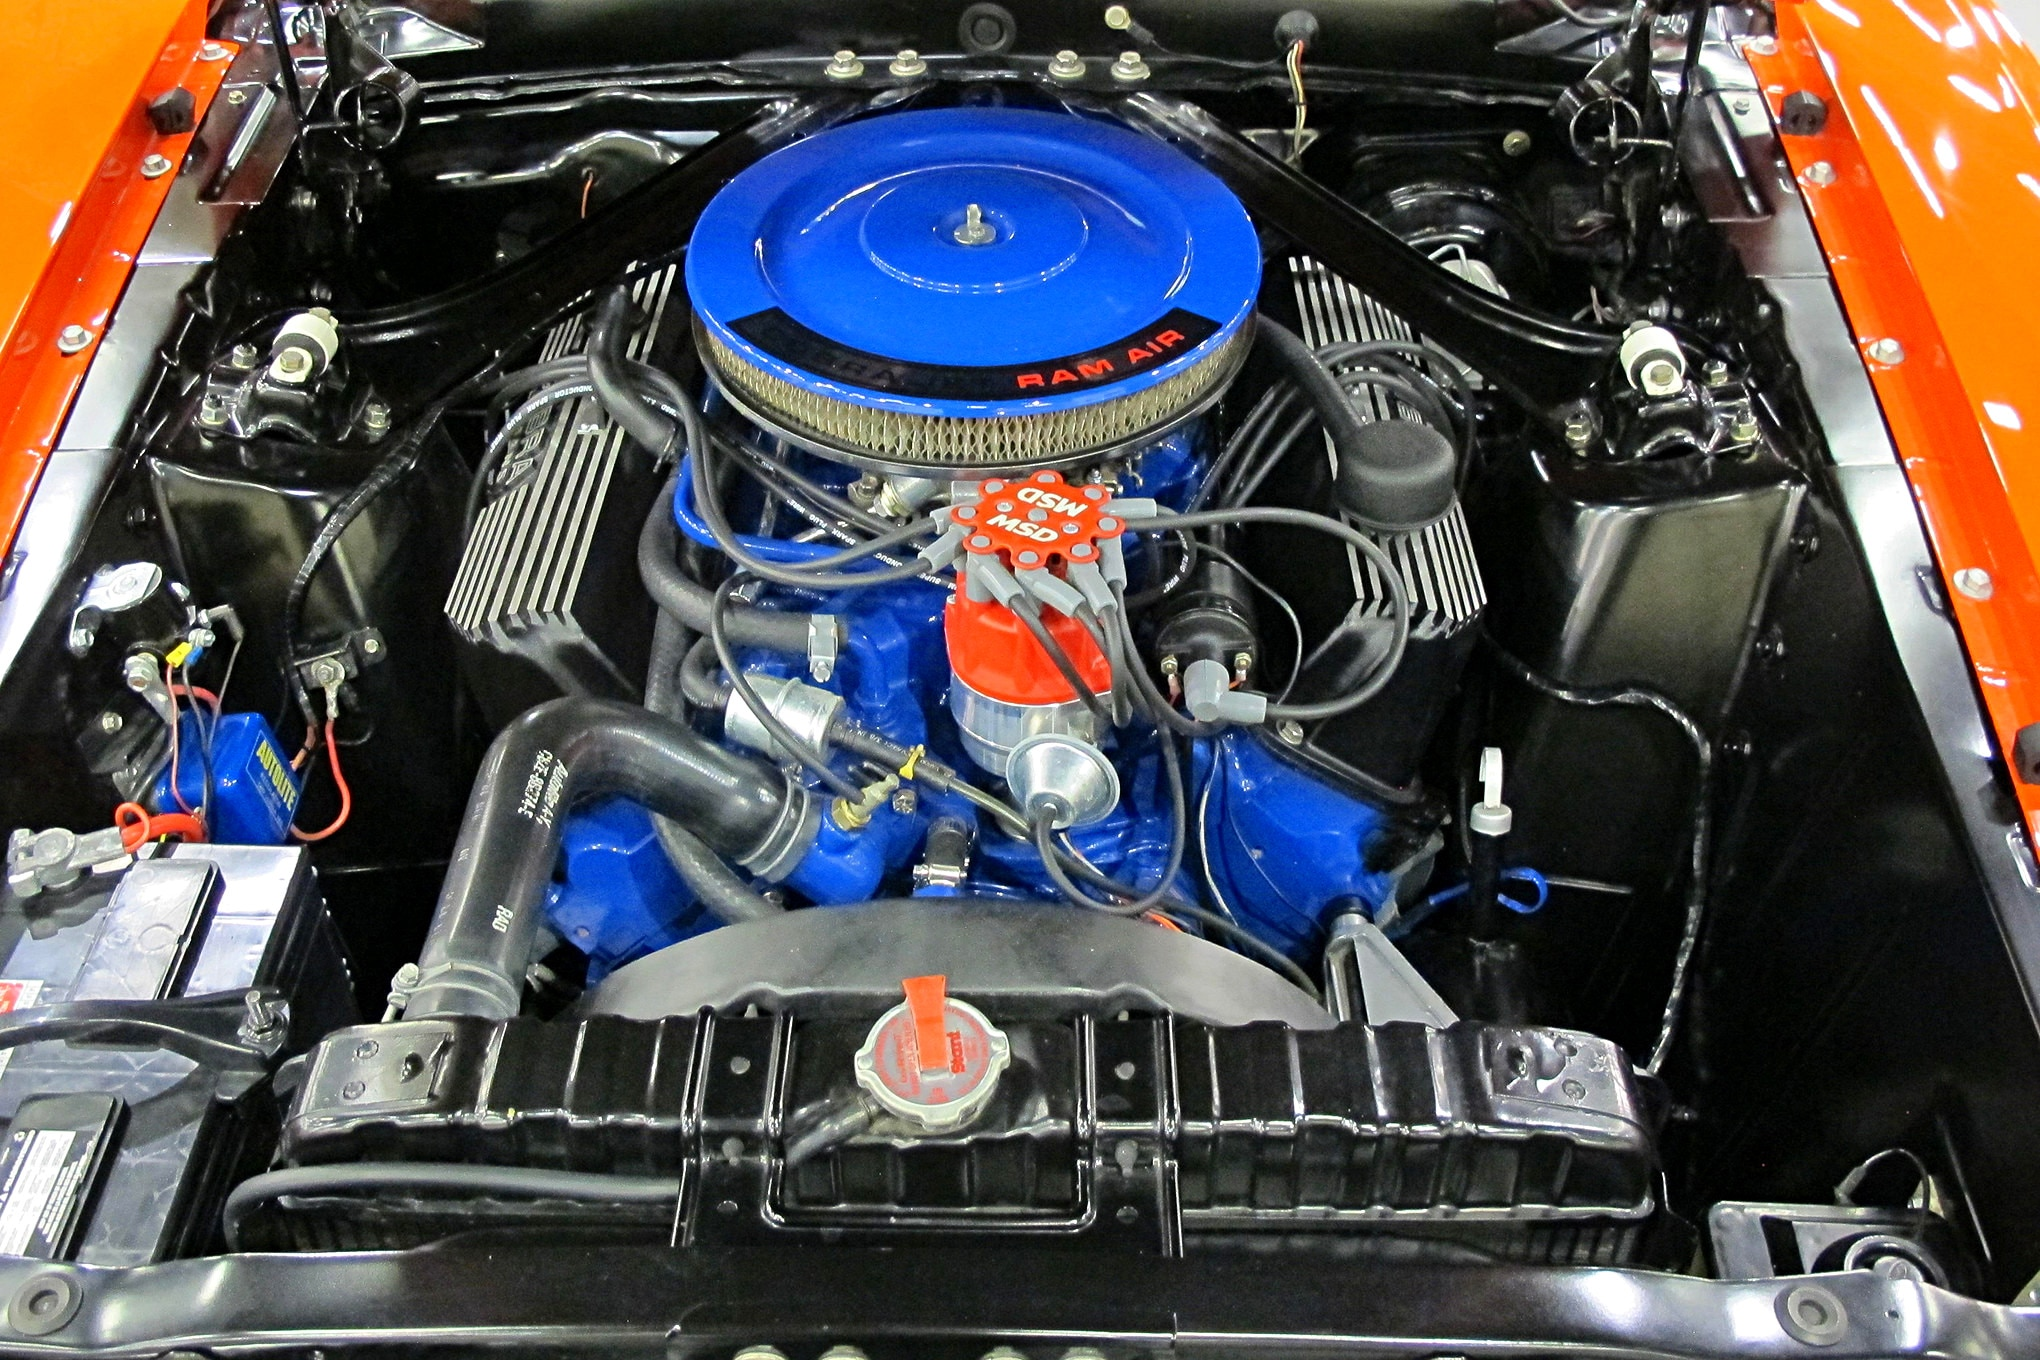 2019 Nascar Ford Mustang Engine